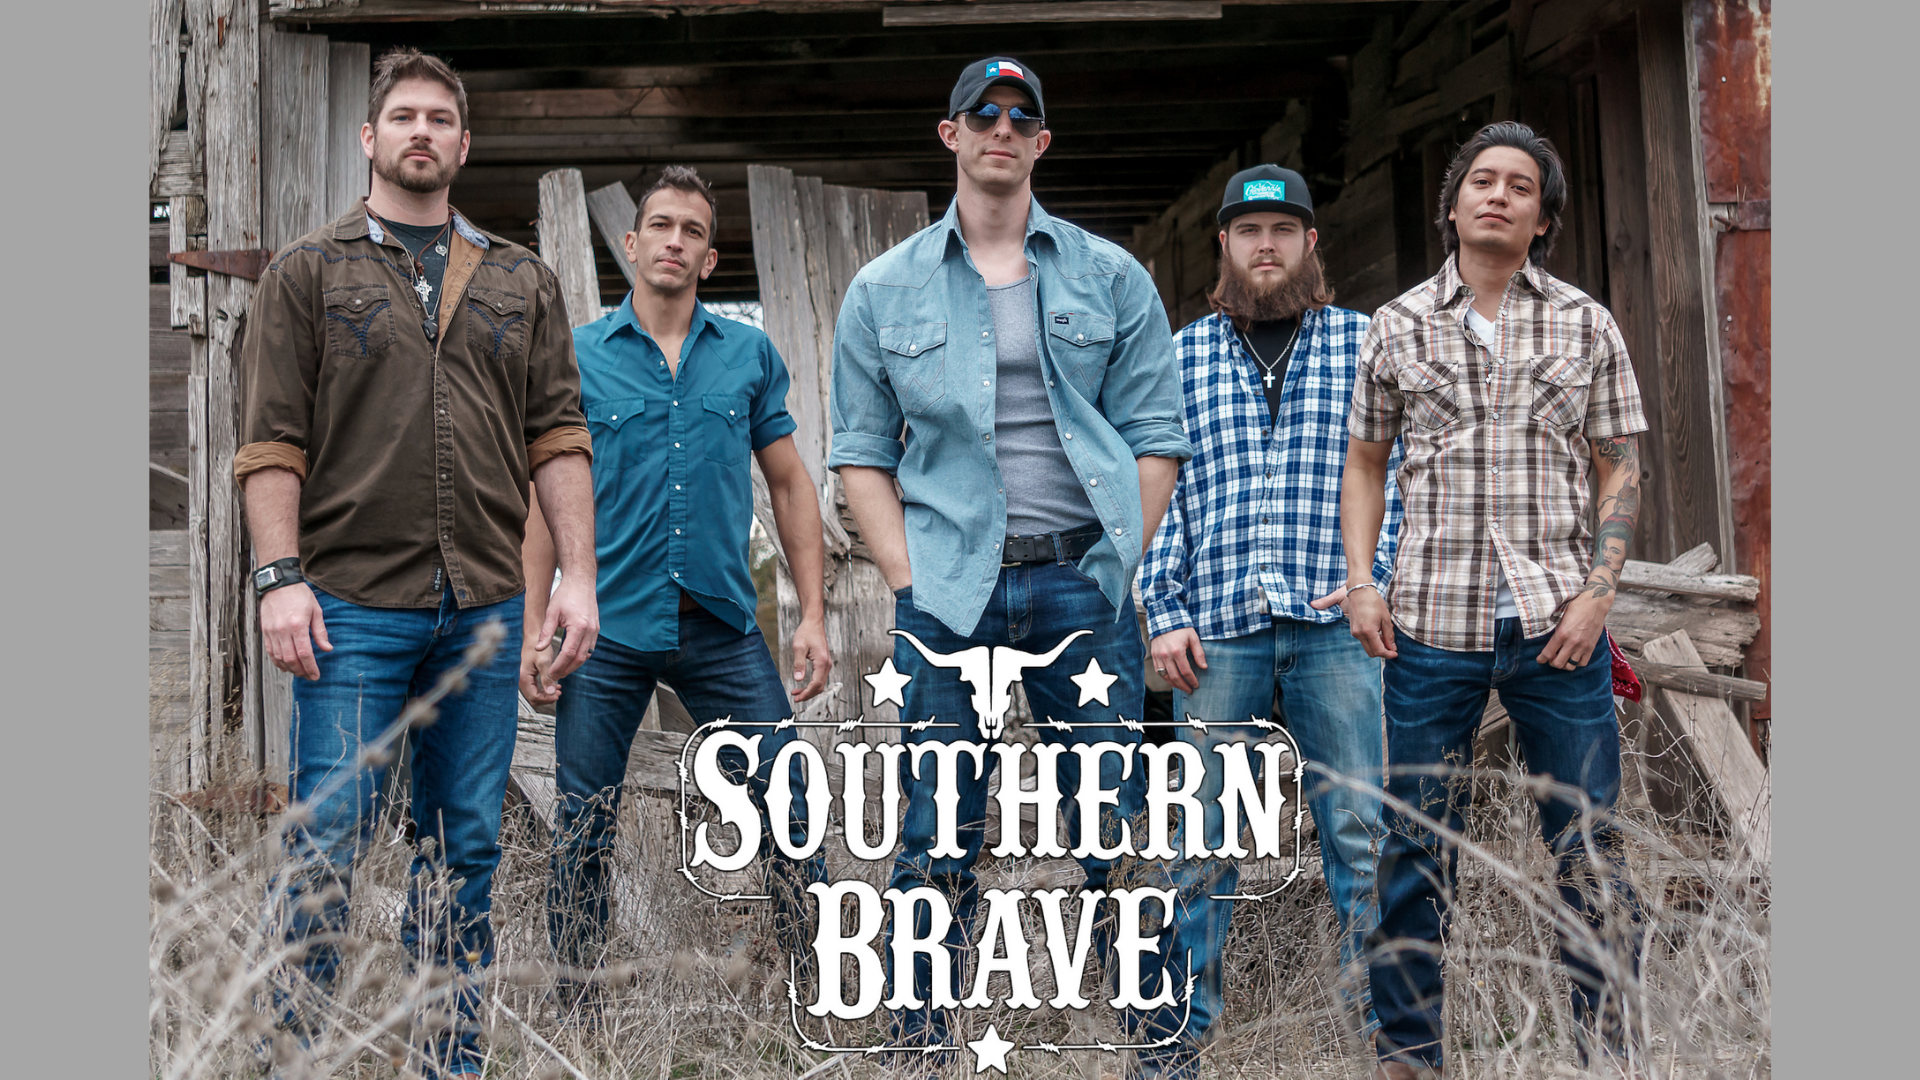 Promo image of Southern Brave